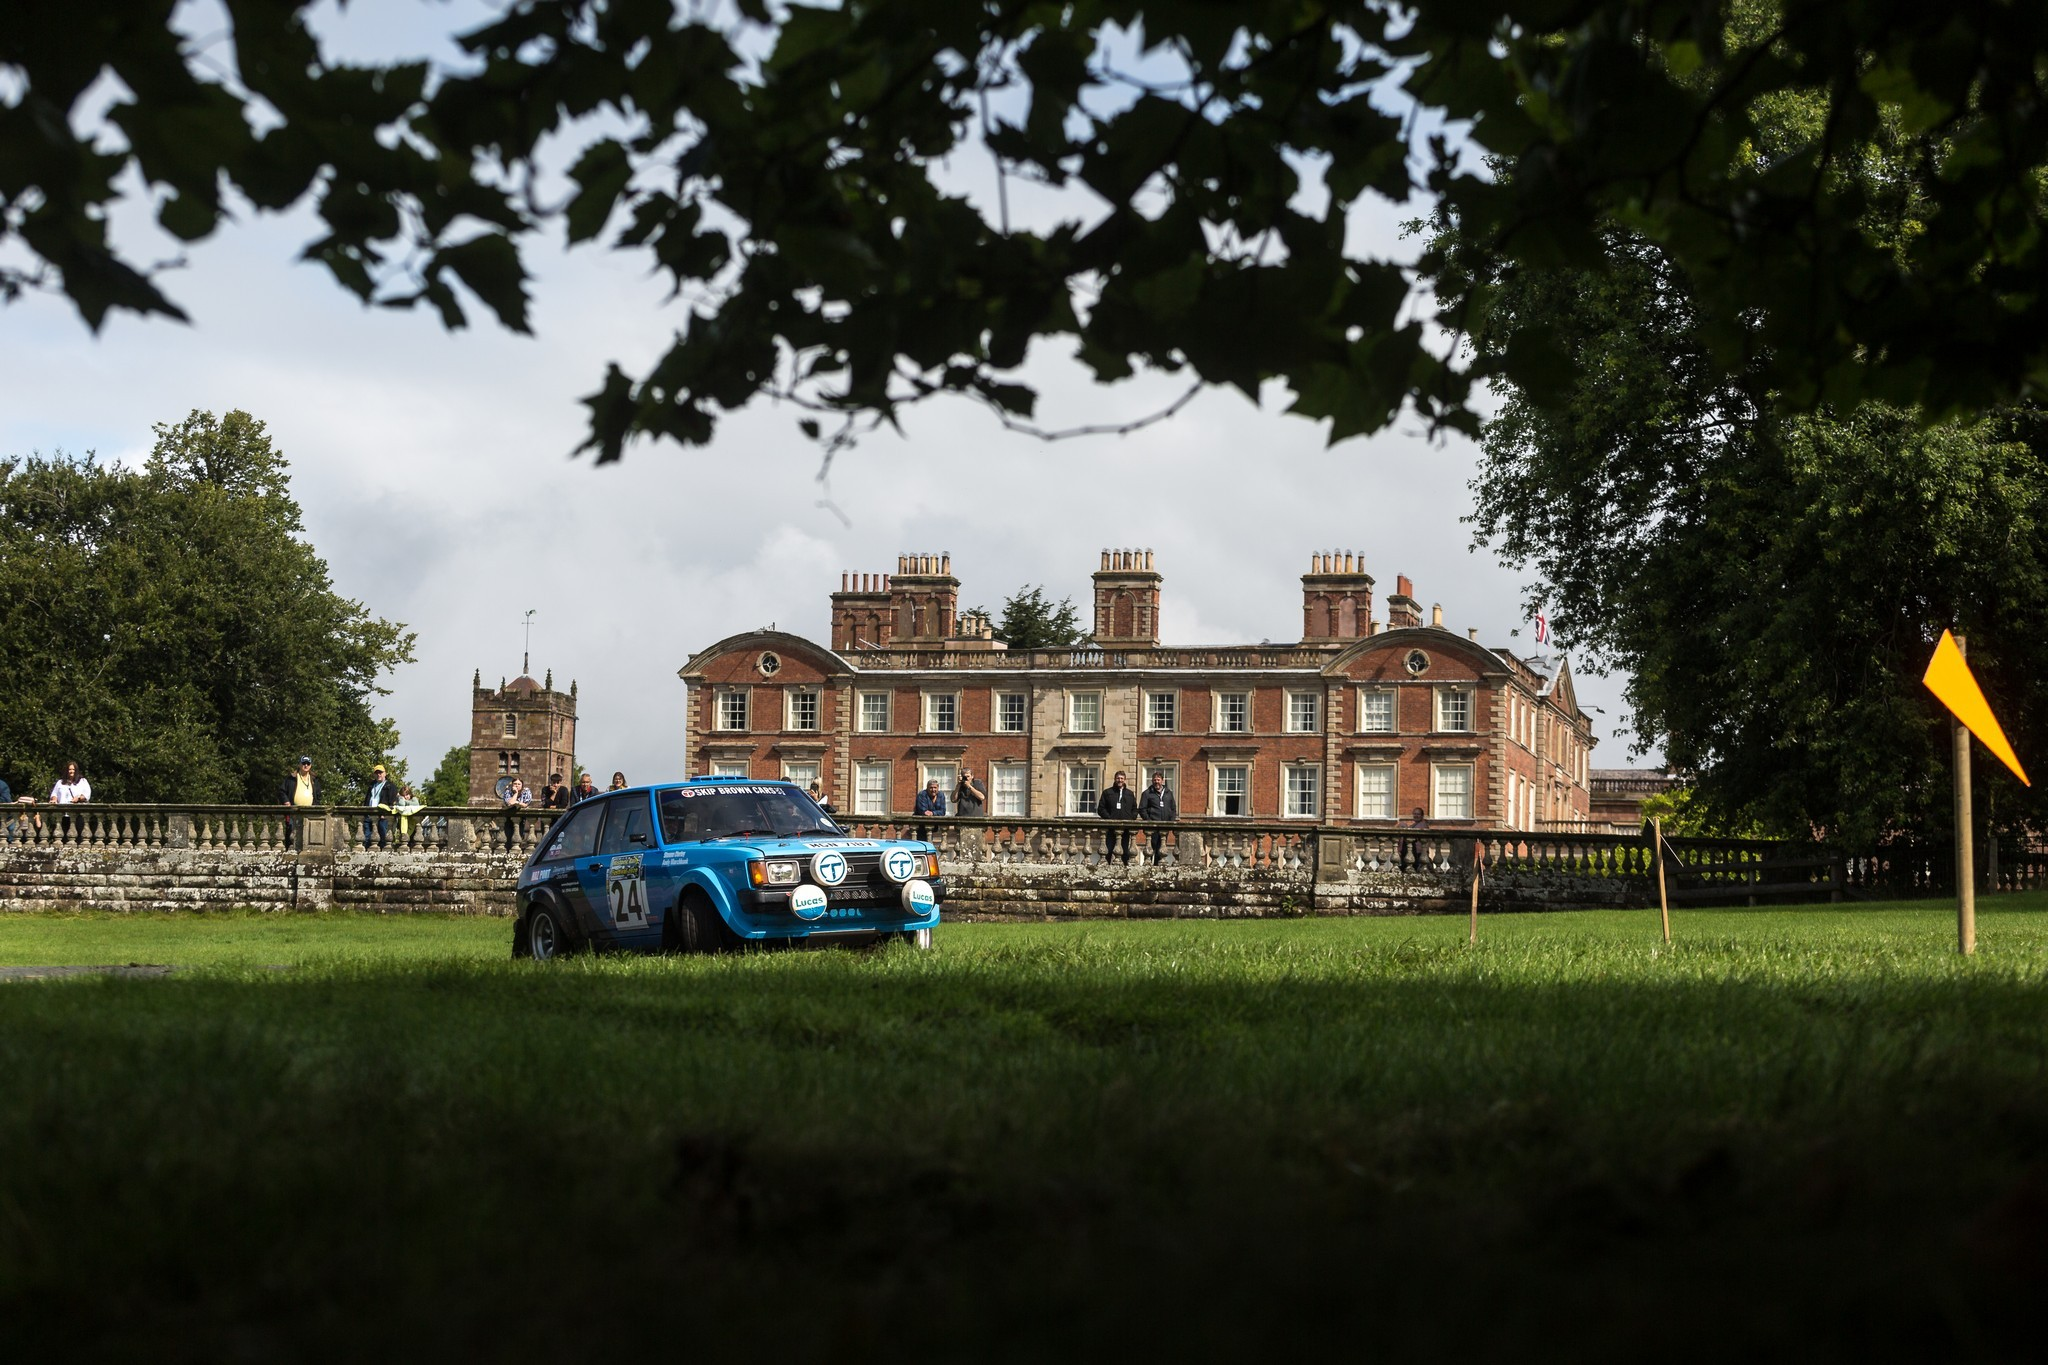 Talbot Sunbeam in front of the Weston Park Country House